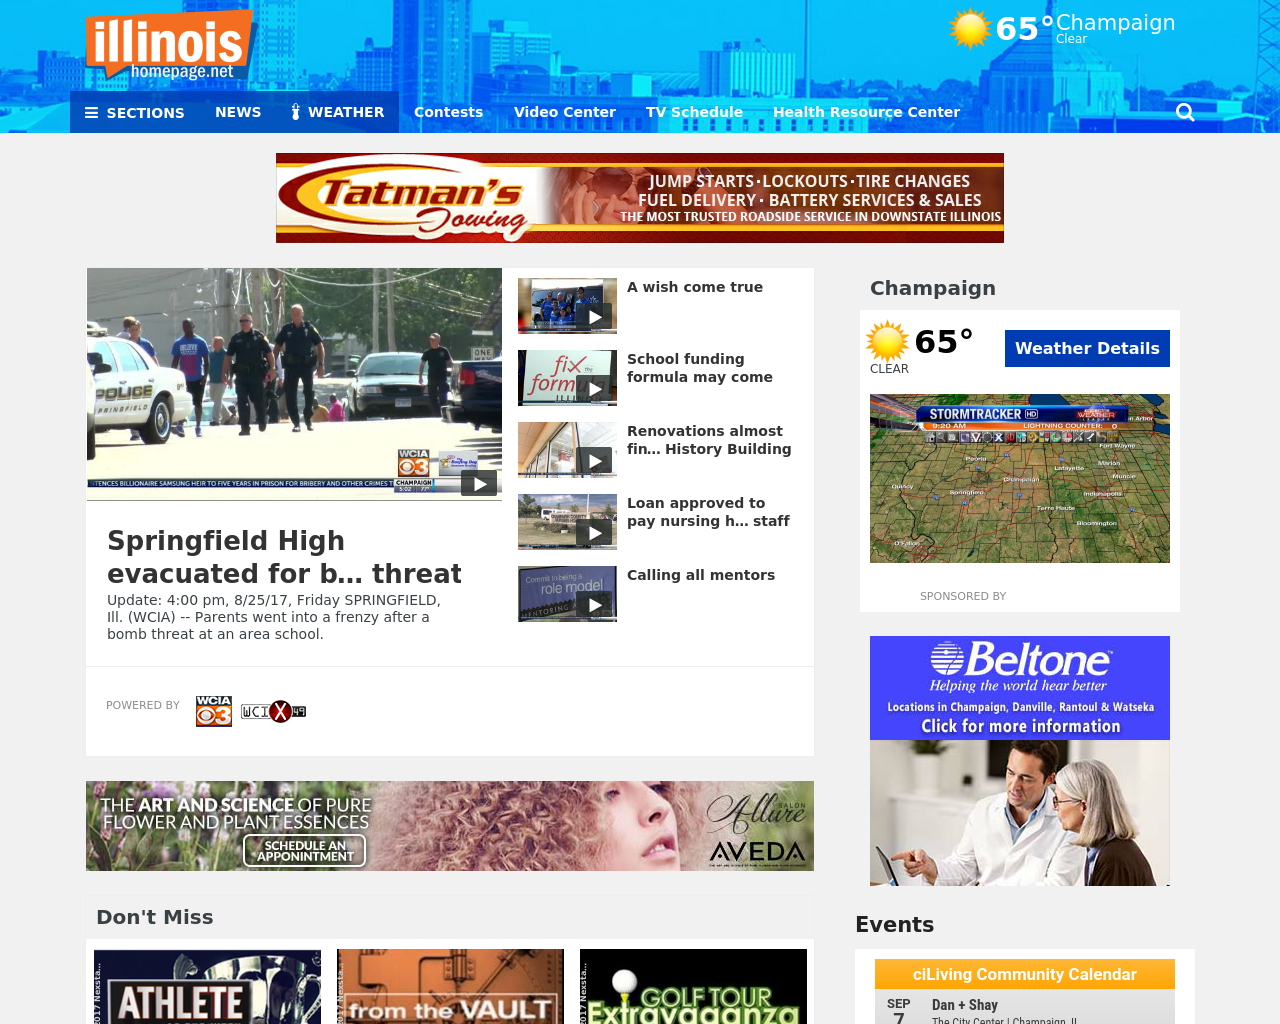 Illinois-Homepage-Advertising-Reviews-Pricing